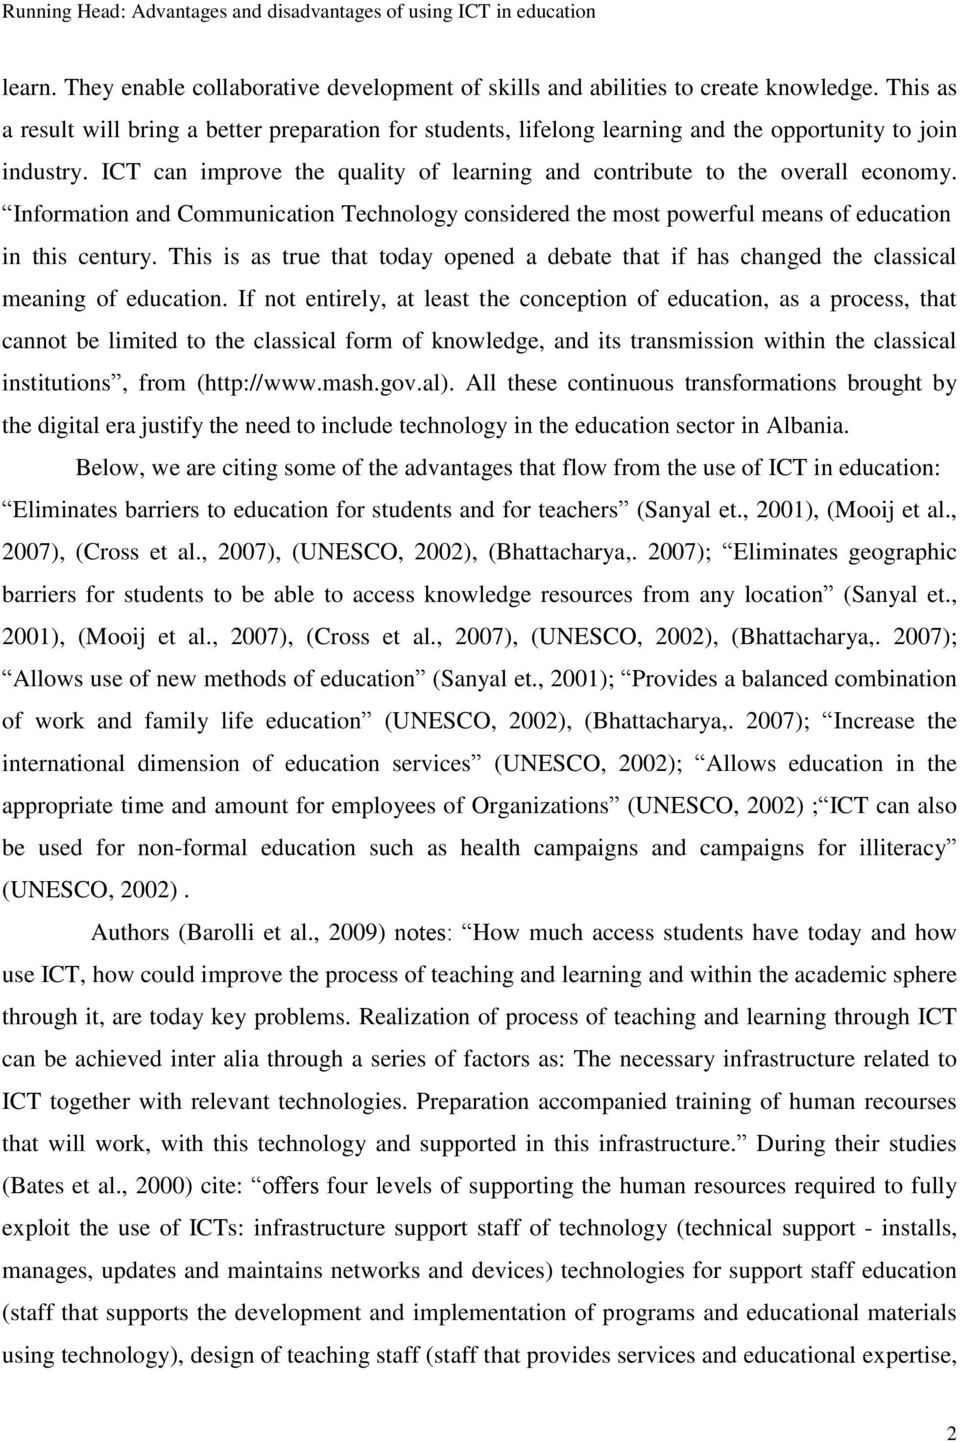 advantages and disadvantages of using ict in education pdf information and communication technology considered the most powerful means of education in this century